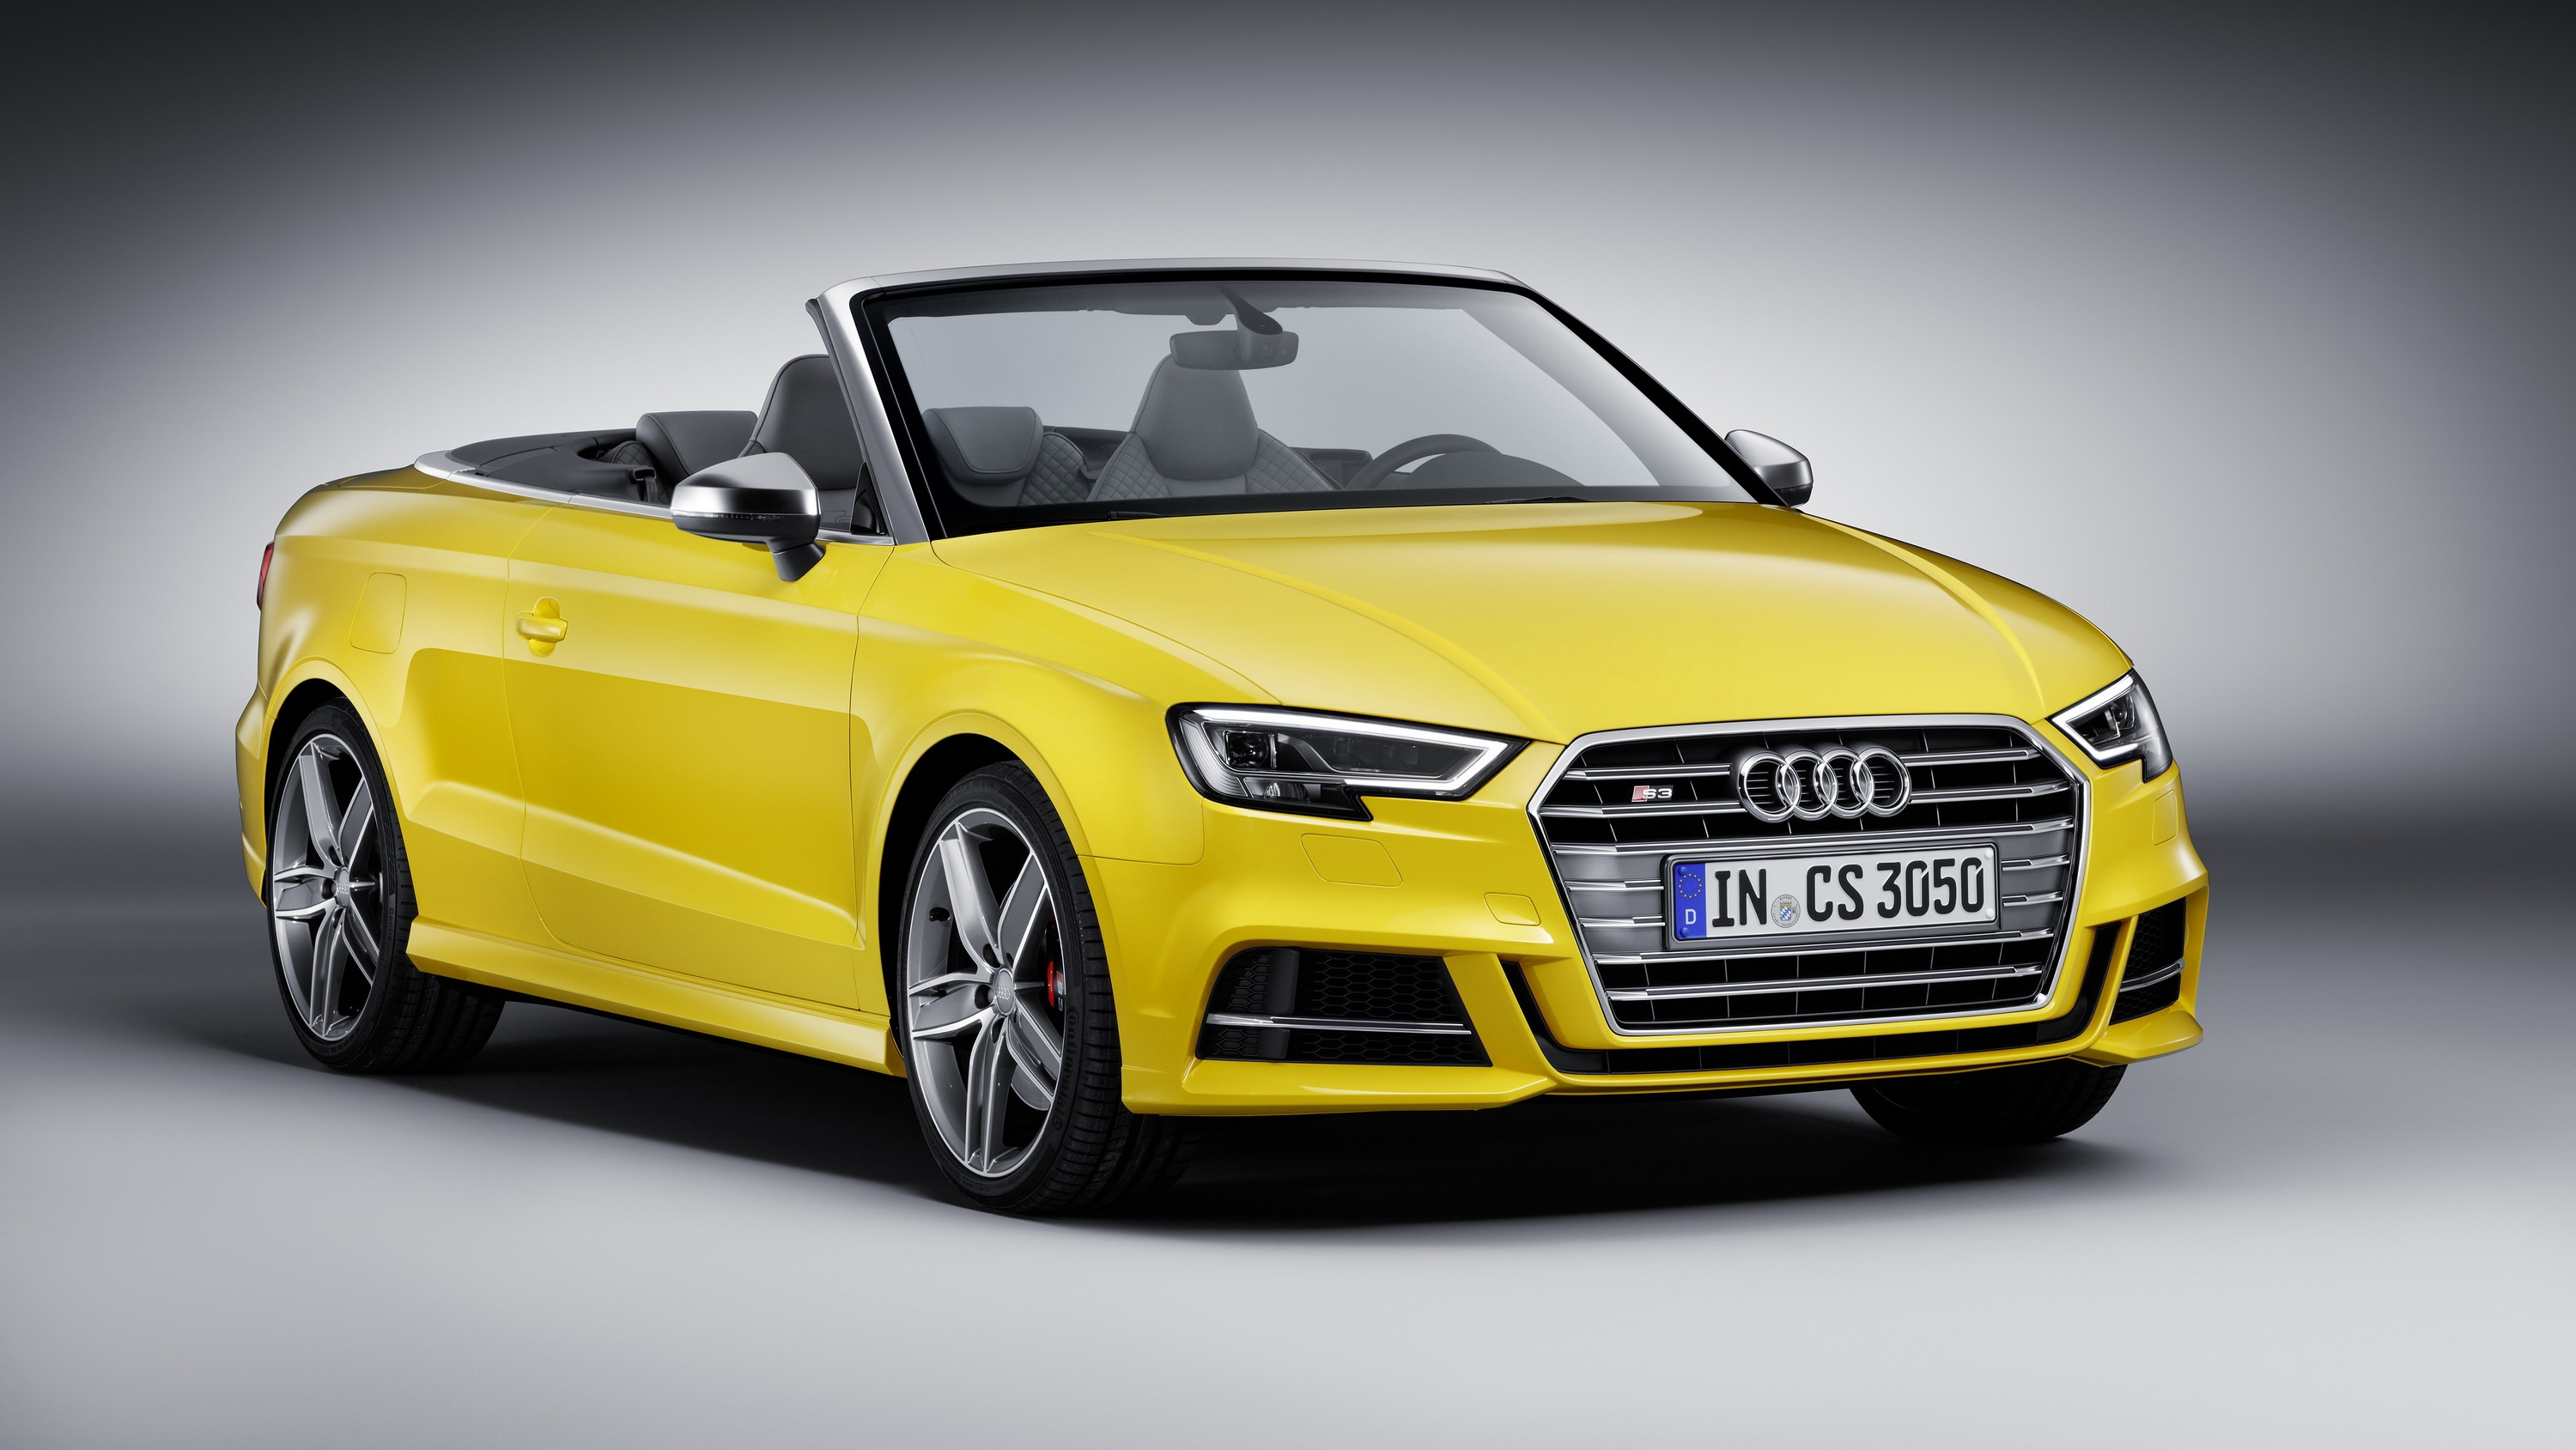 2017 Audi S3 Cabriolet Top Speed